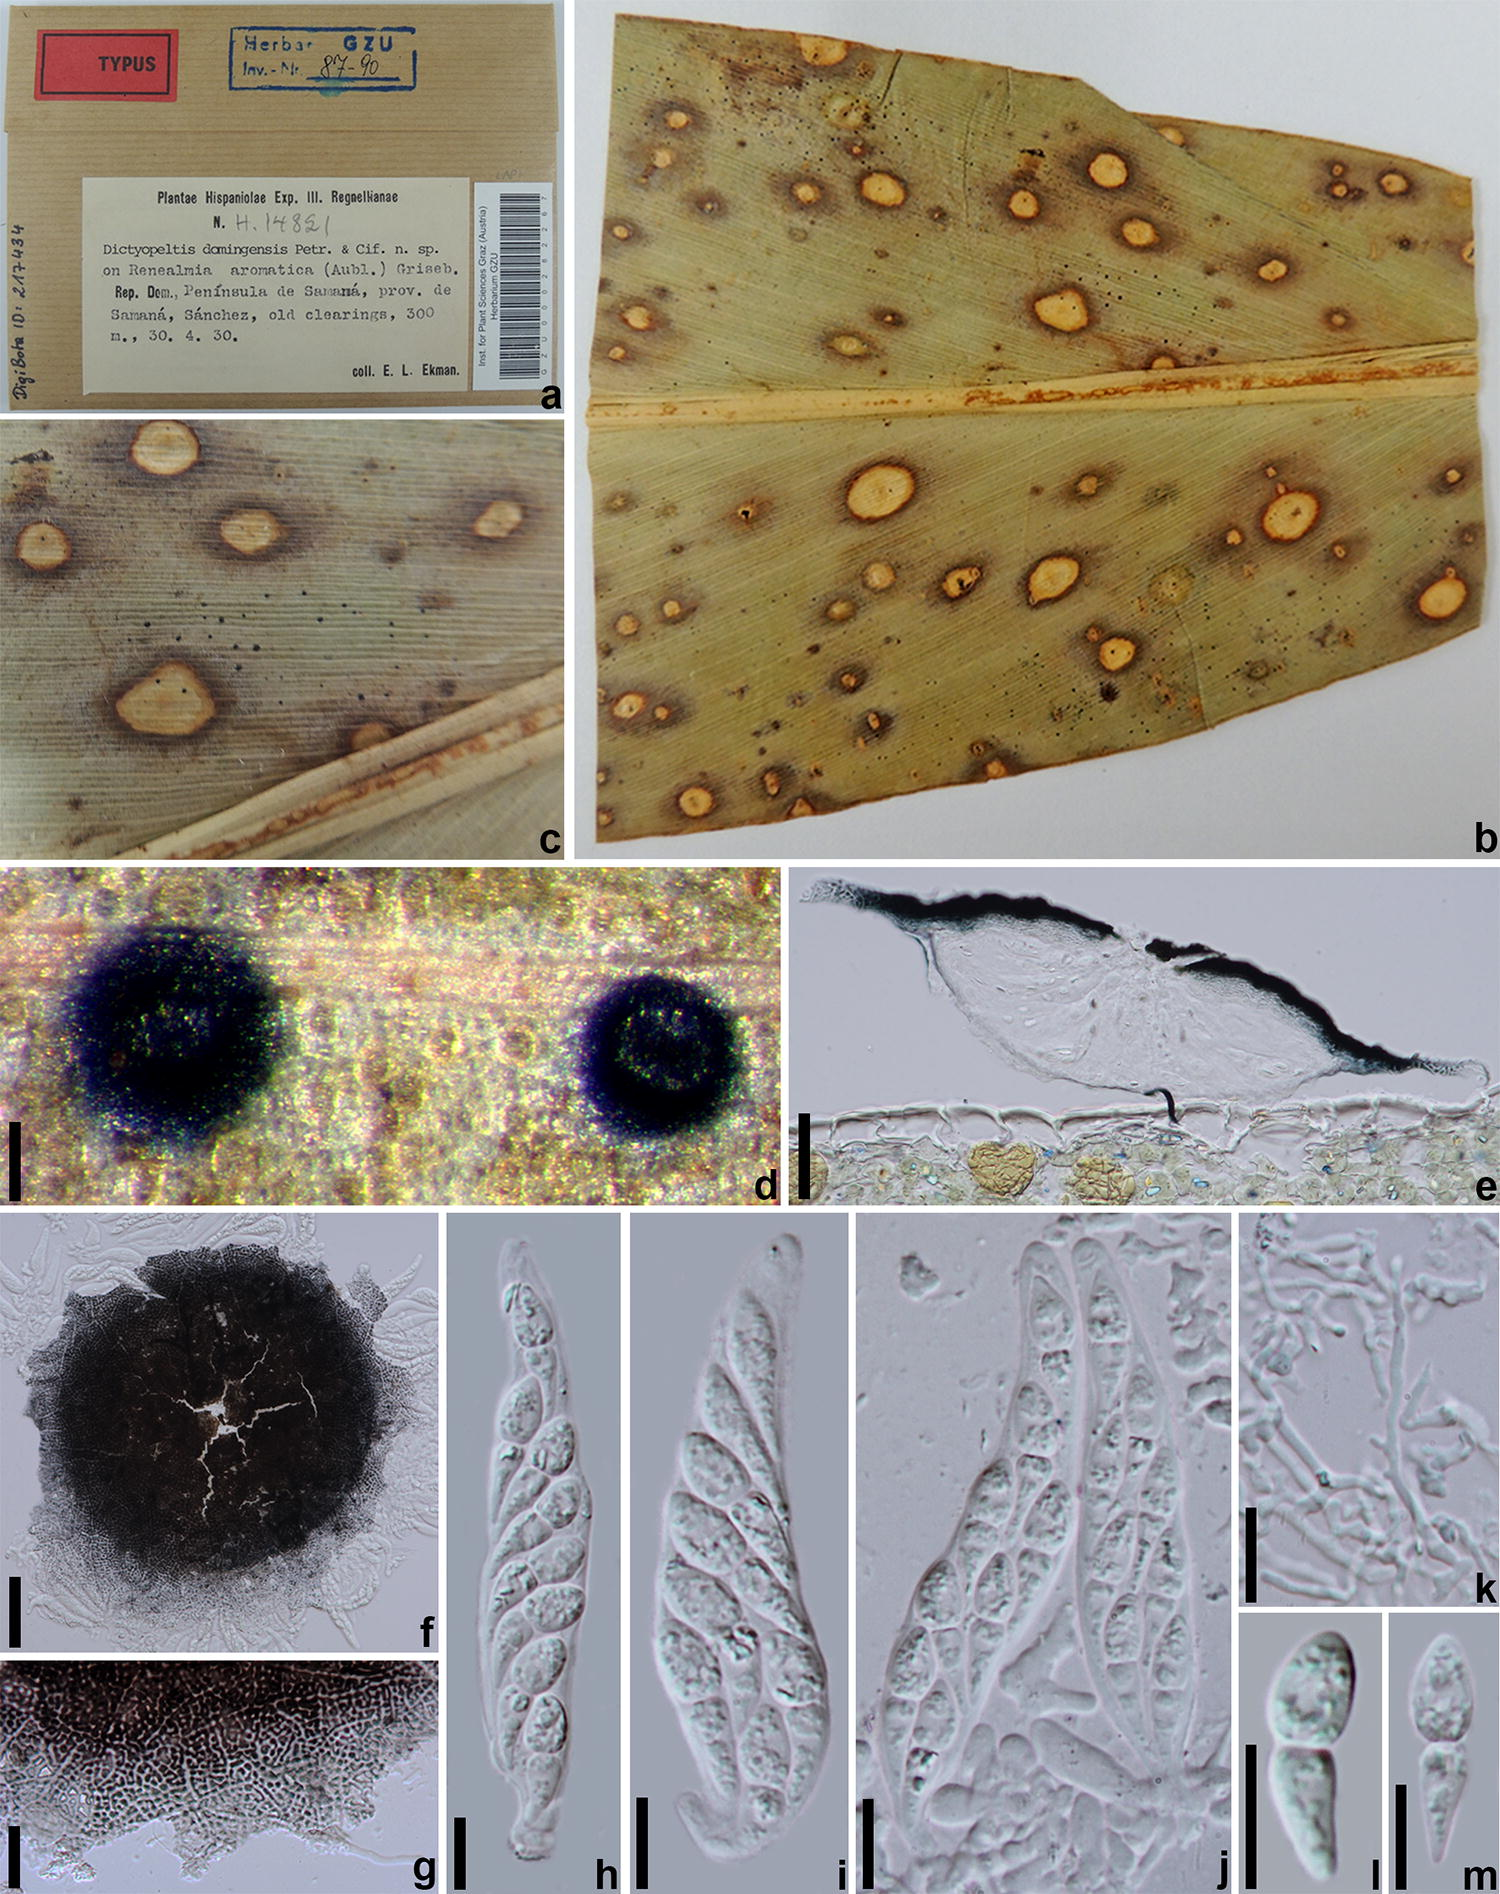 Taxonomy and the evolutionary history of Micropeltidaceae | SpringerLink